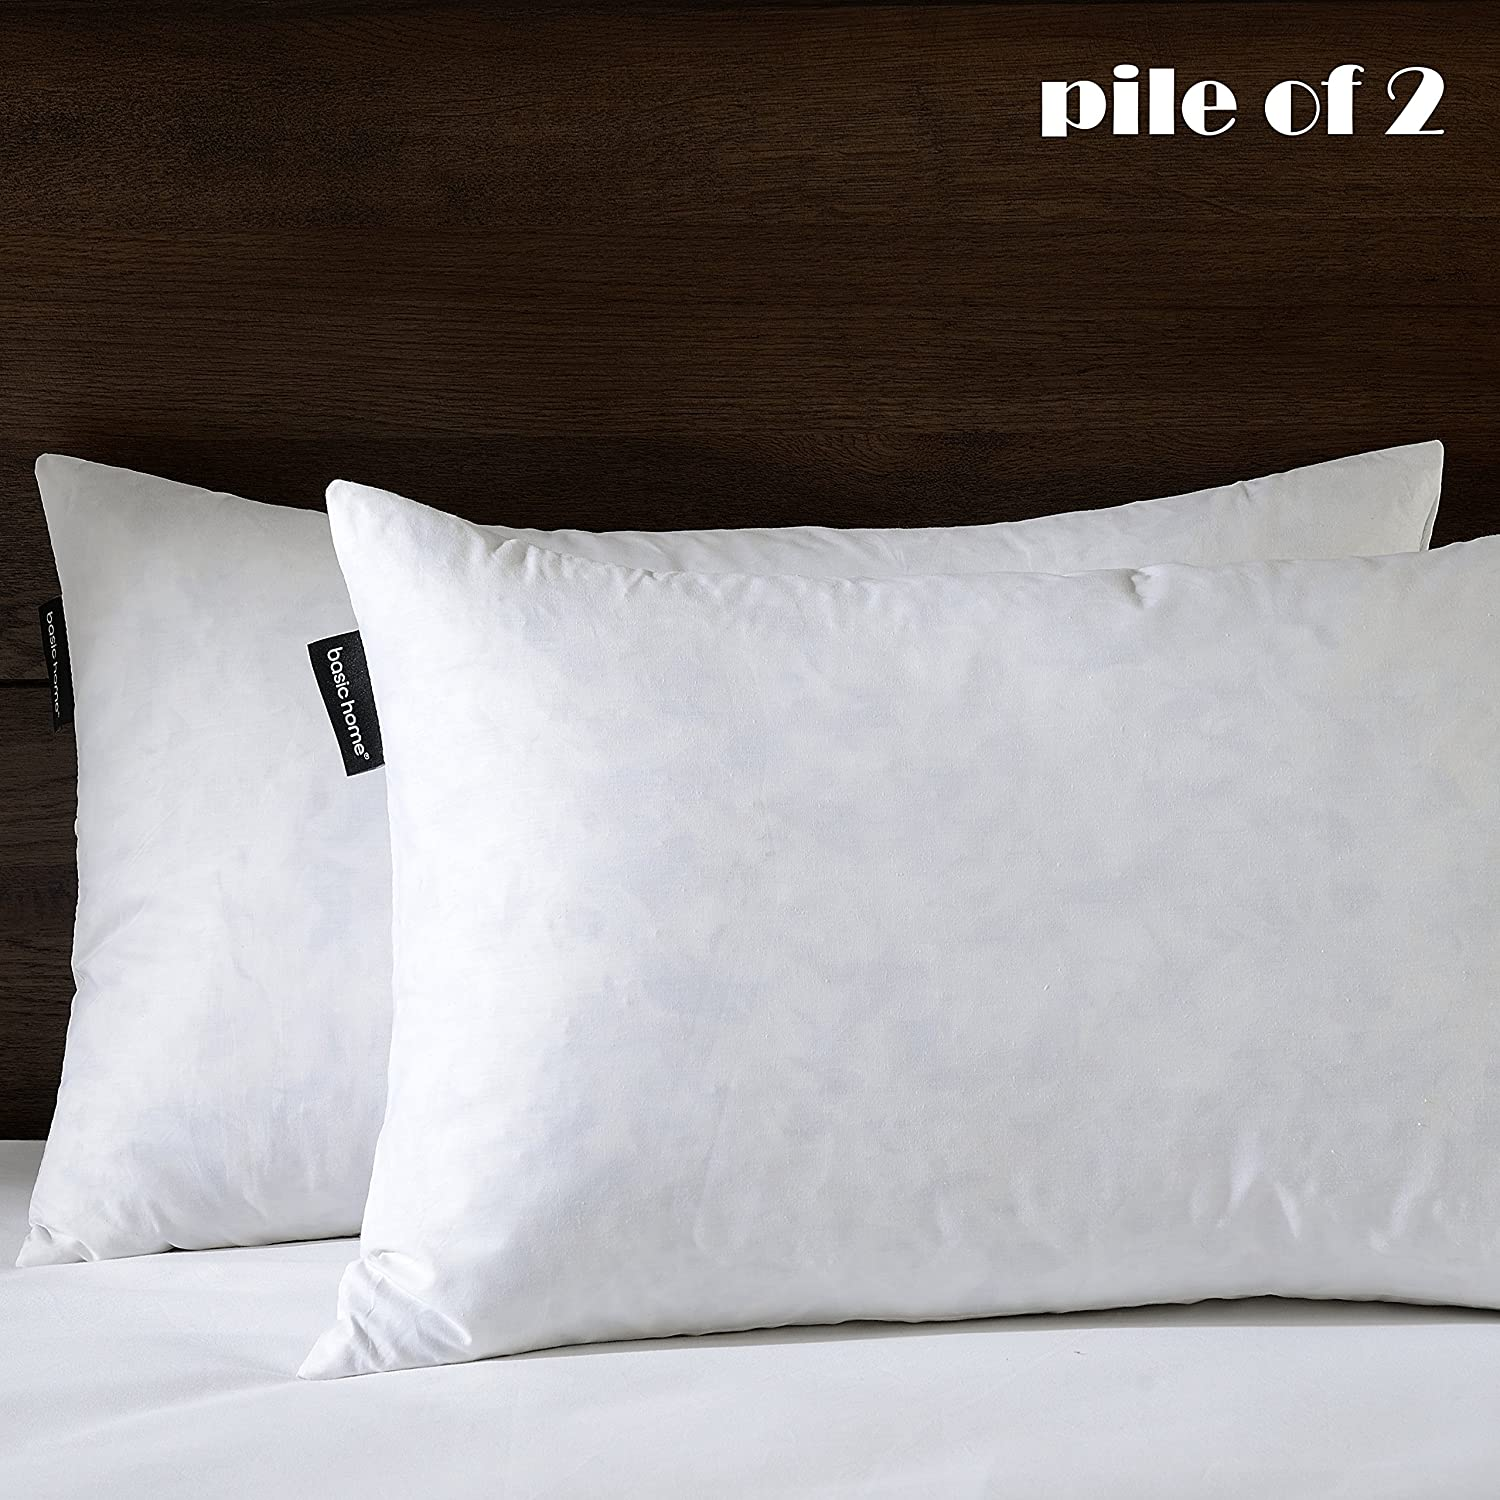 Basic Home - Rectangle Down-Feather Throw Pillow Insert